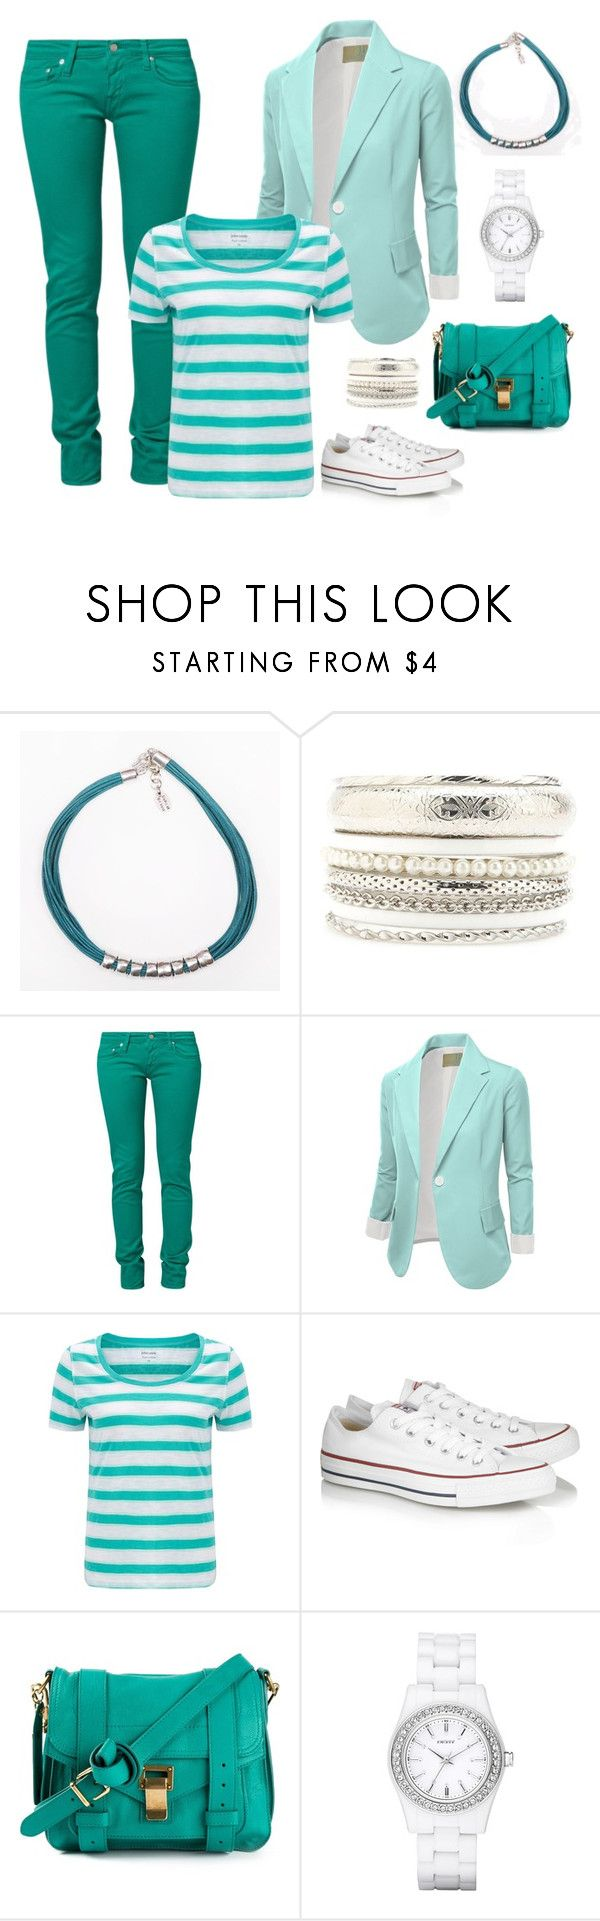 """""""Striped T-shirt. Shadows of turquoise. Jeans & converses."""" by harmoniq ❤ liked on Polyvore featuring Charlotte Russe, Carhartt, J.TOMSON, John Lewis, Converse, Proenza Schouler and DKNY"""